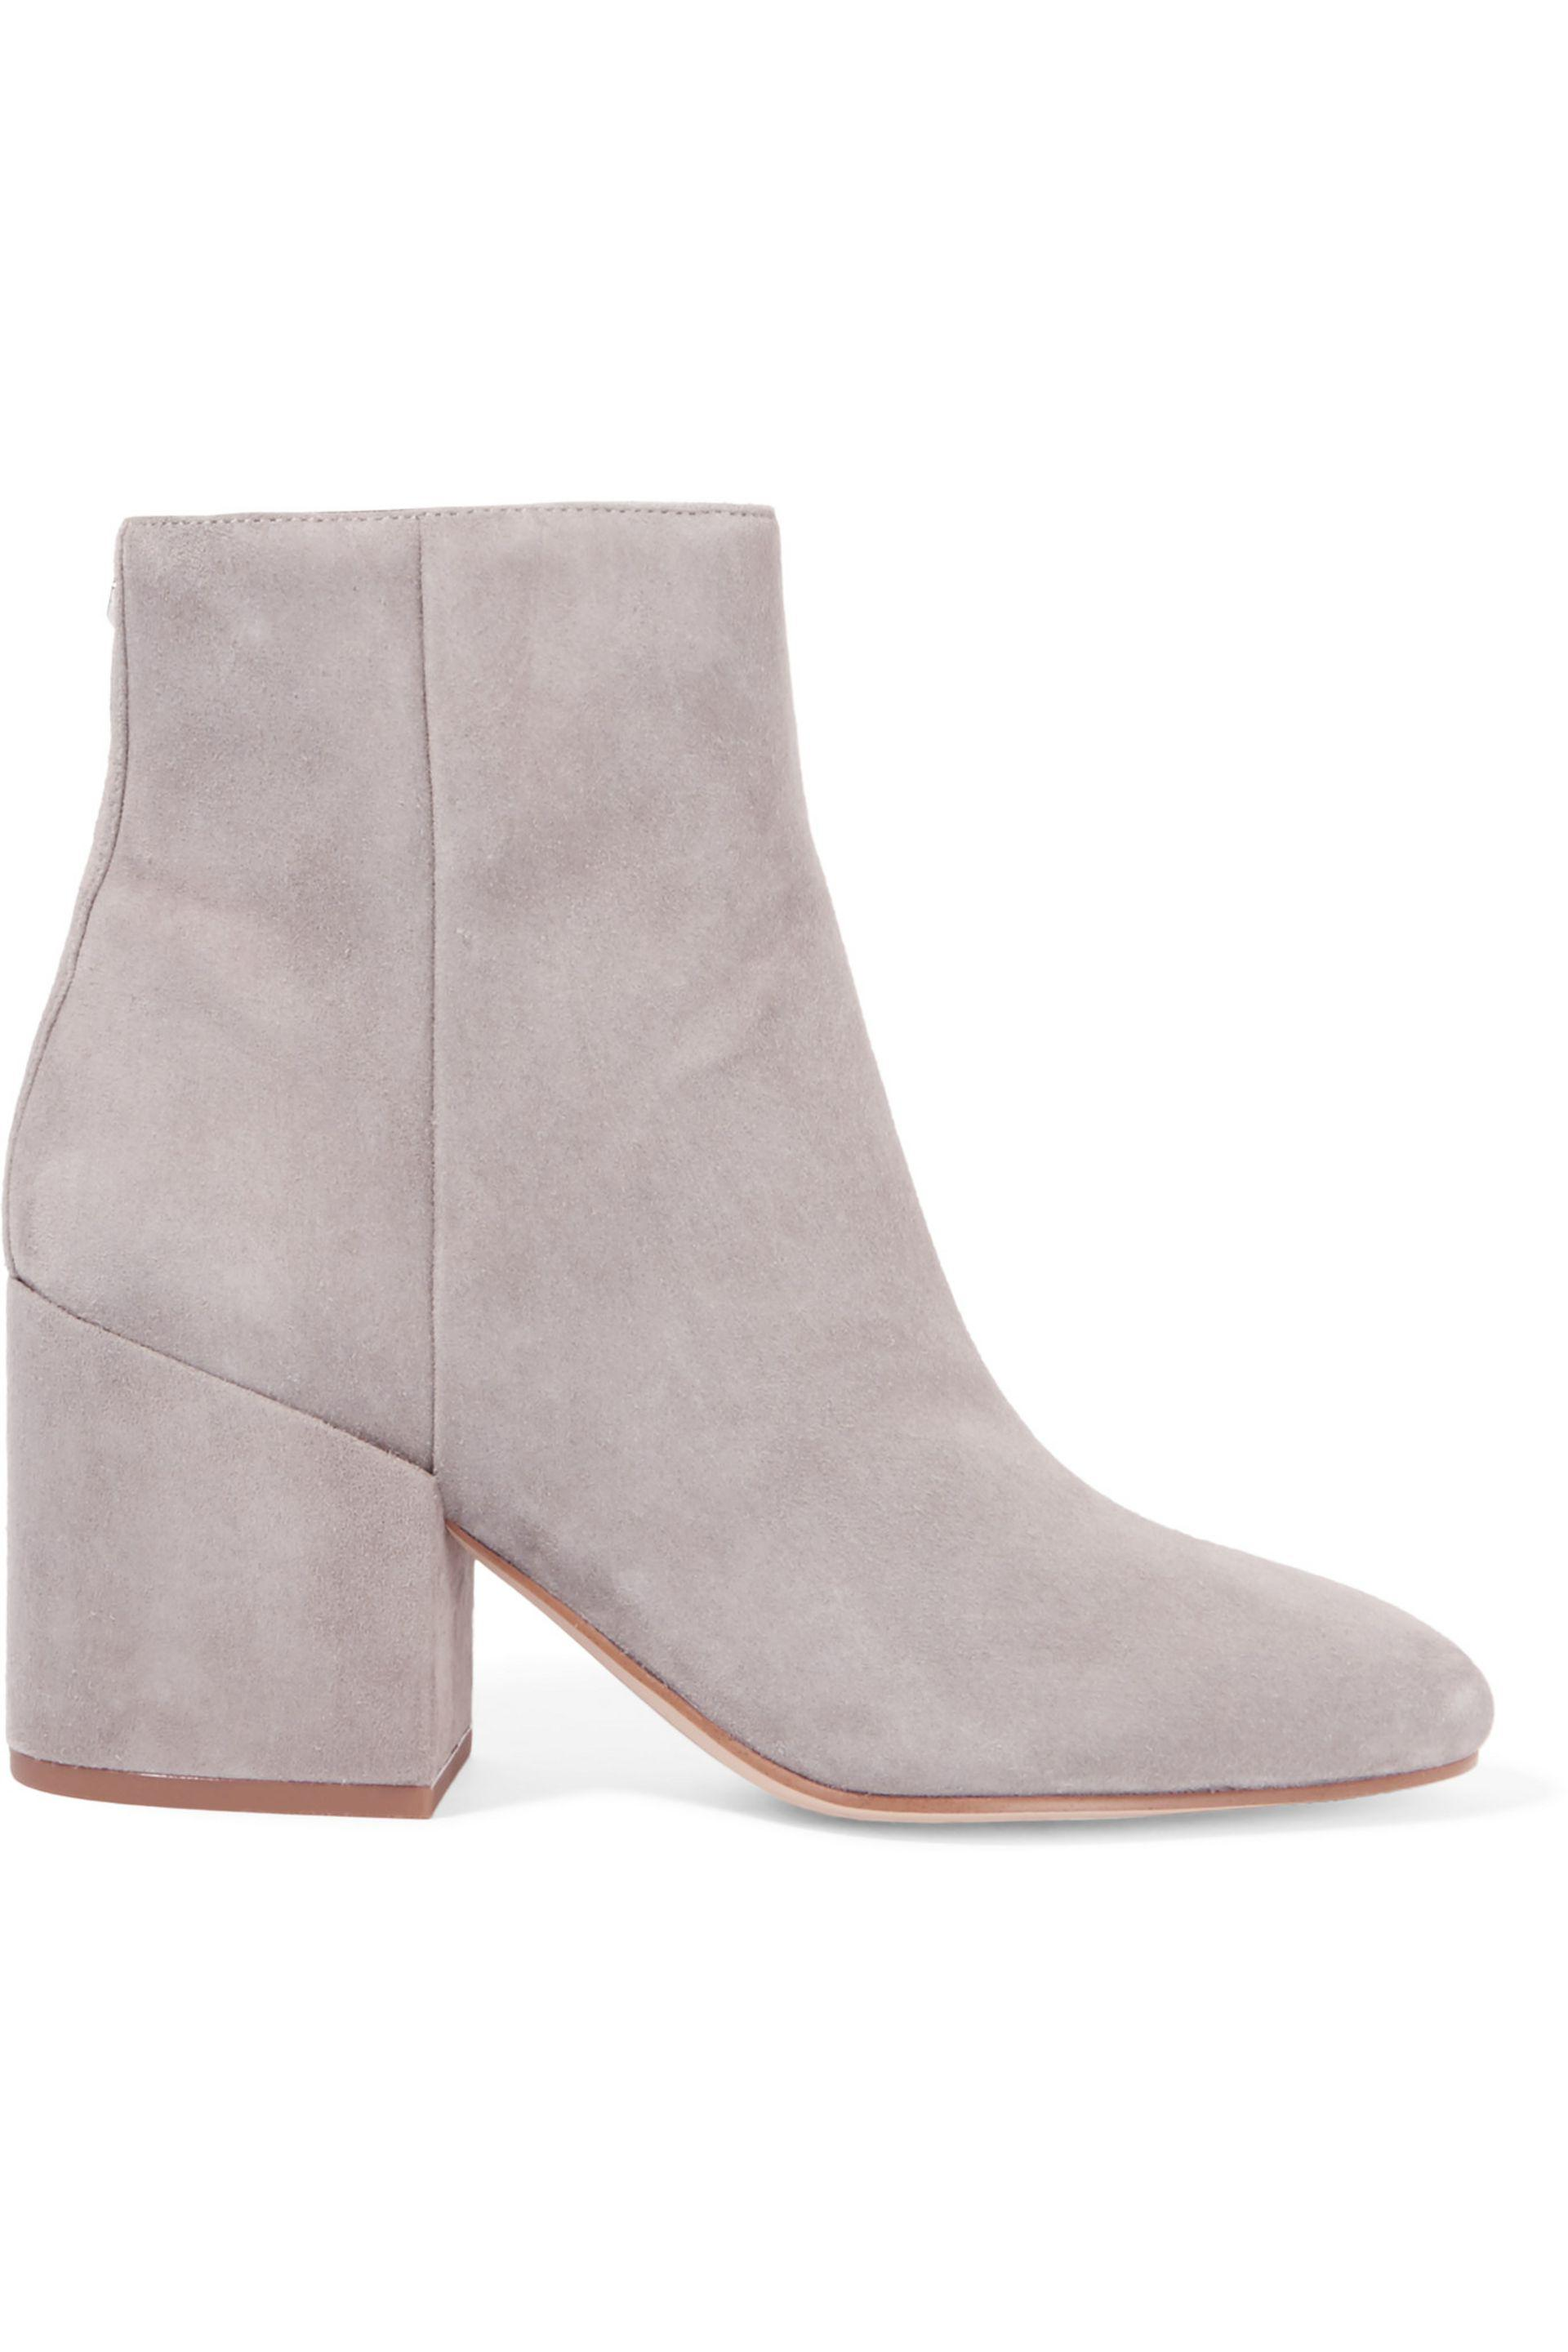 ae91f3adfda2a6 Lyst - Sam Edelman Taye Suede Ankle Boots in Gray